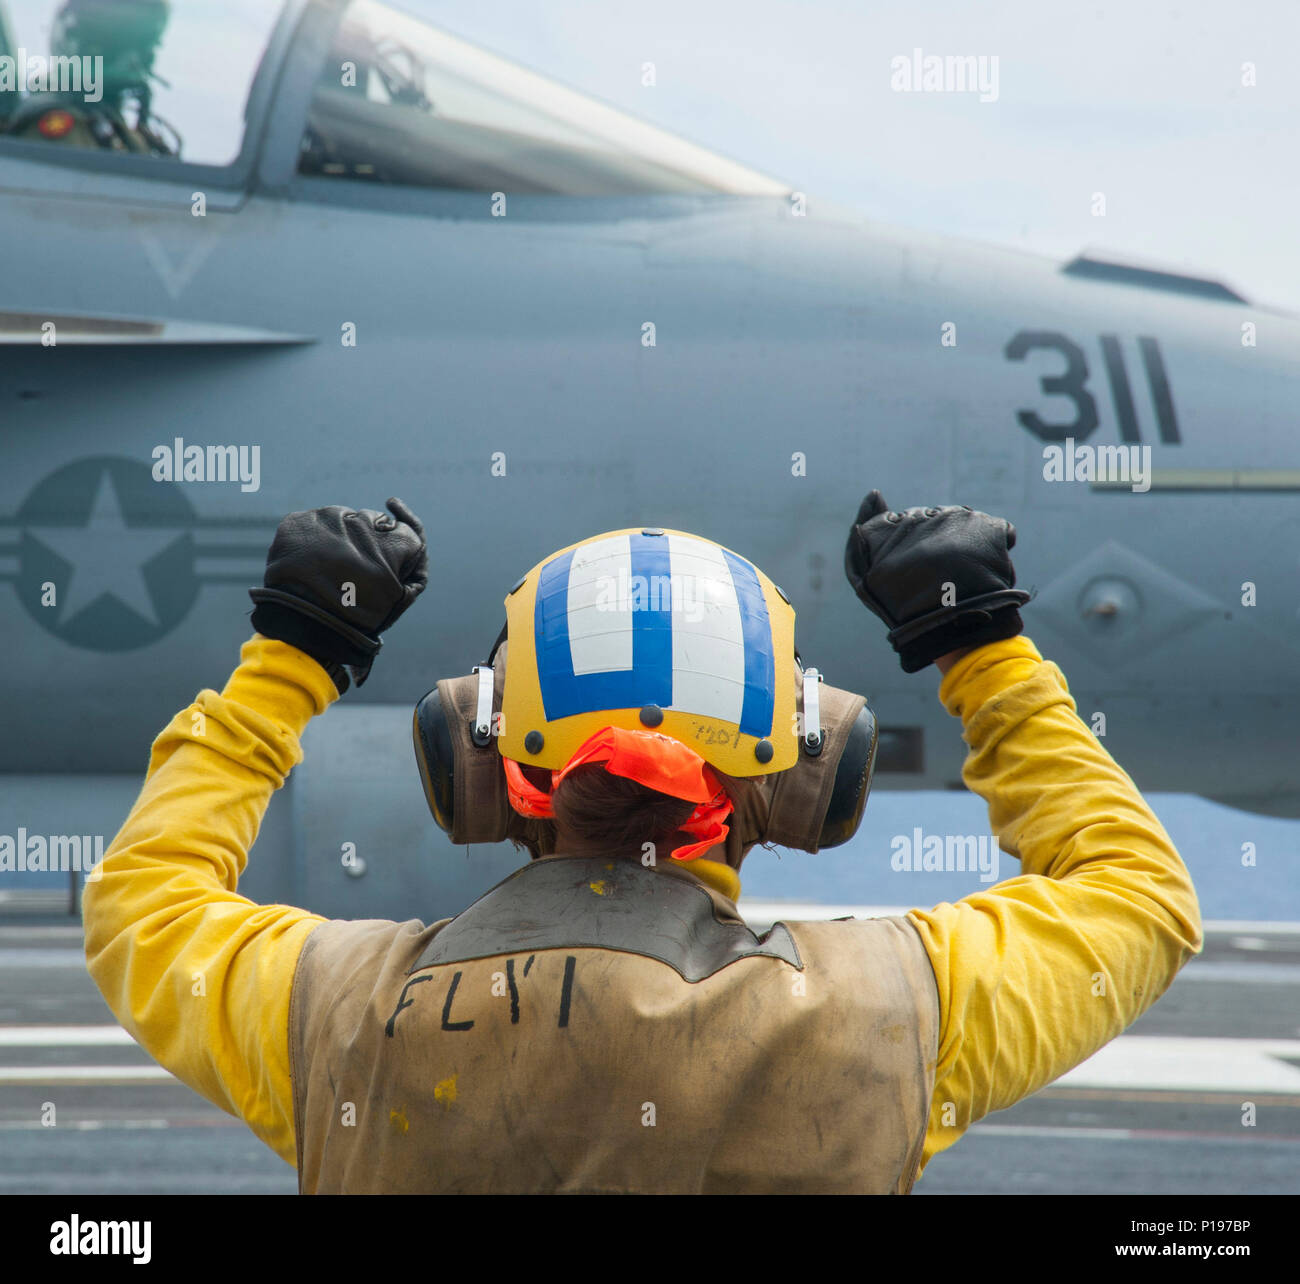 George Bush Pilot Navy Stock Photos George Bush Pilot Navy Stock